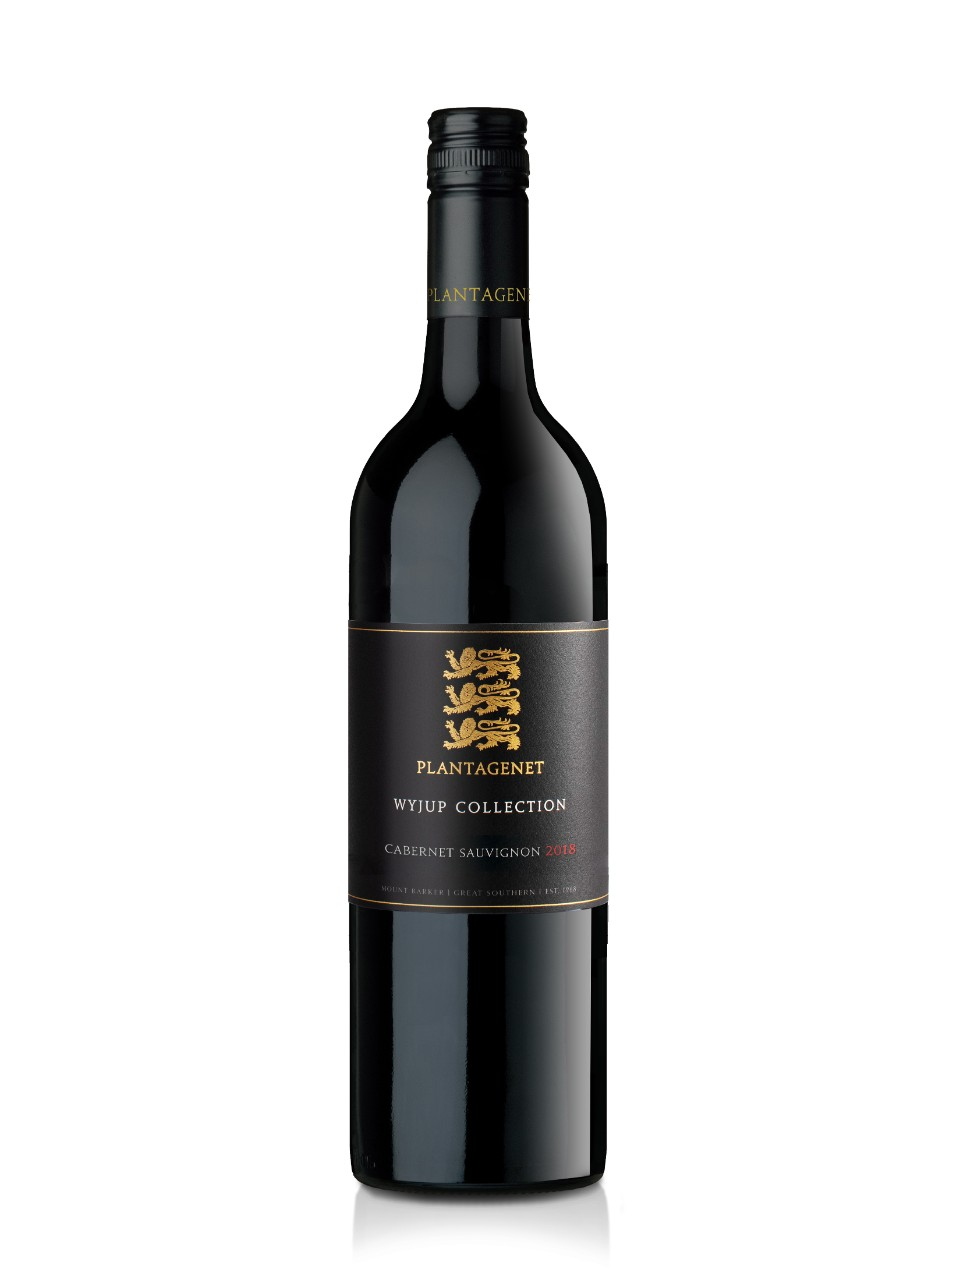 Plantagenet Wyjup Collectioin Cabernet Sauvignon 2018 from LCBO